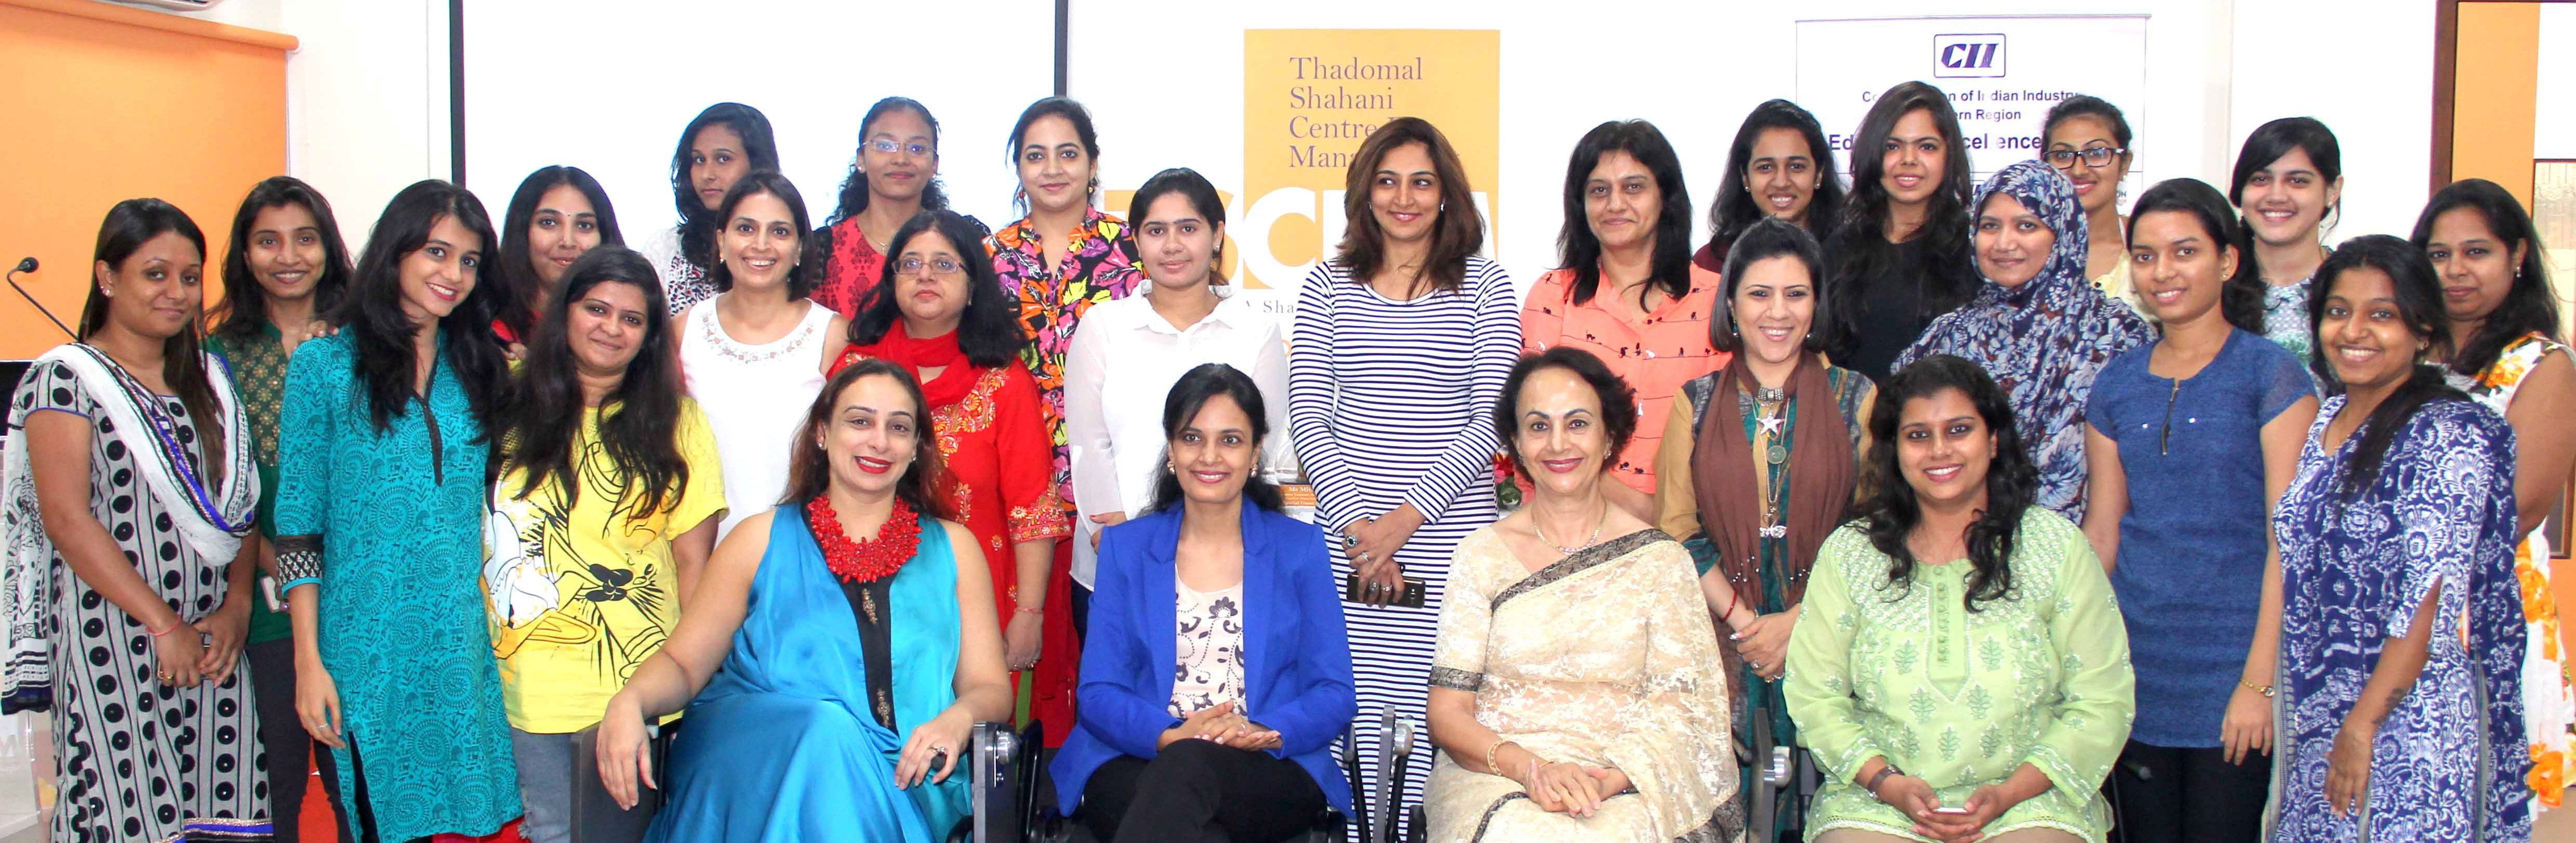 CII IWN Maharashtra Chapter - '100 Hours of Change' Mentoring Session